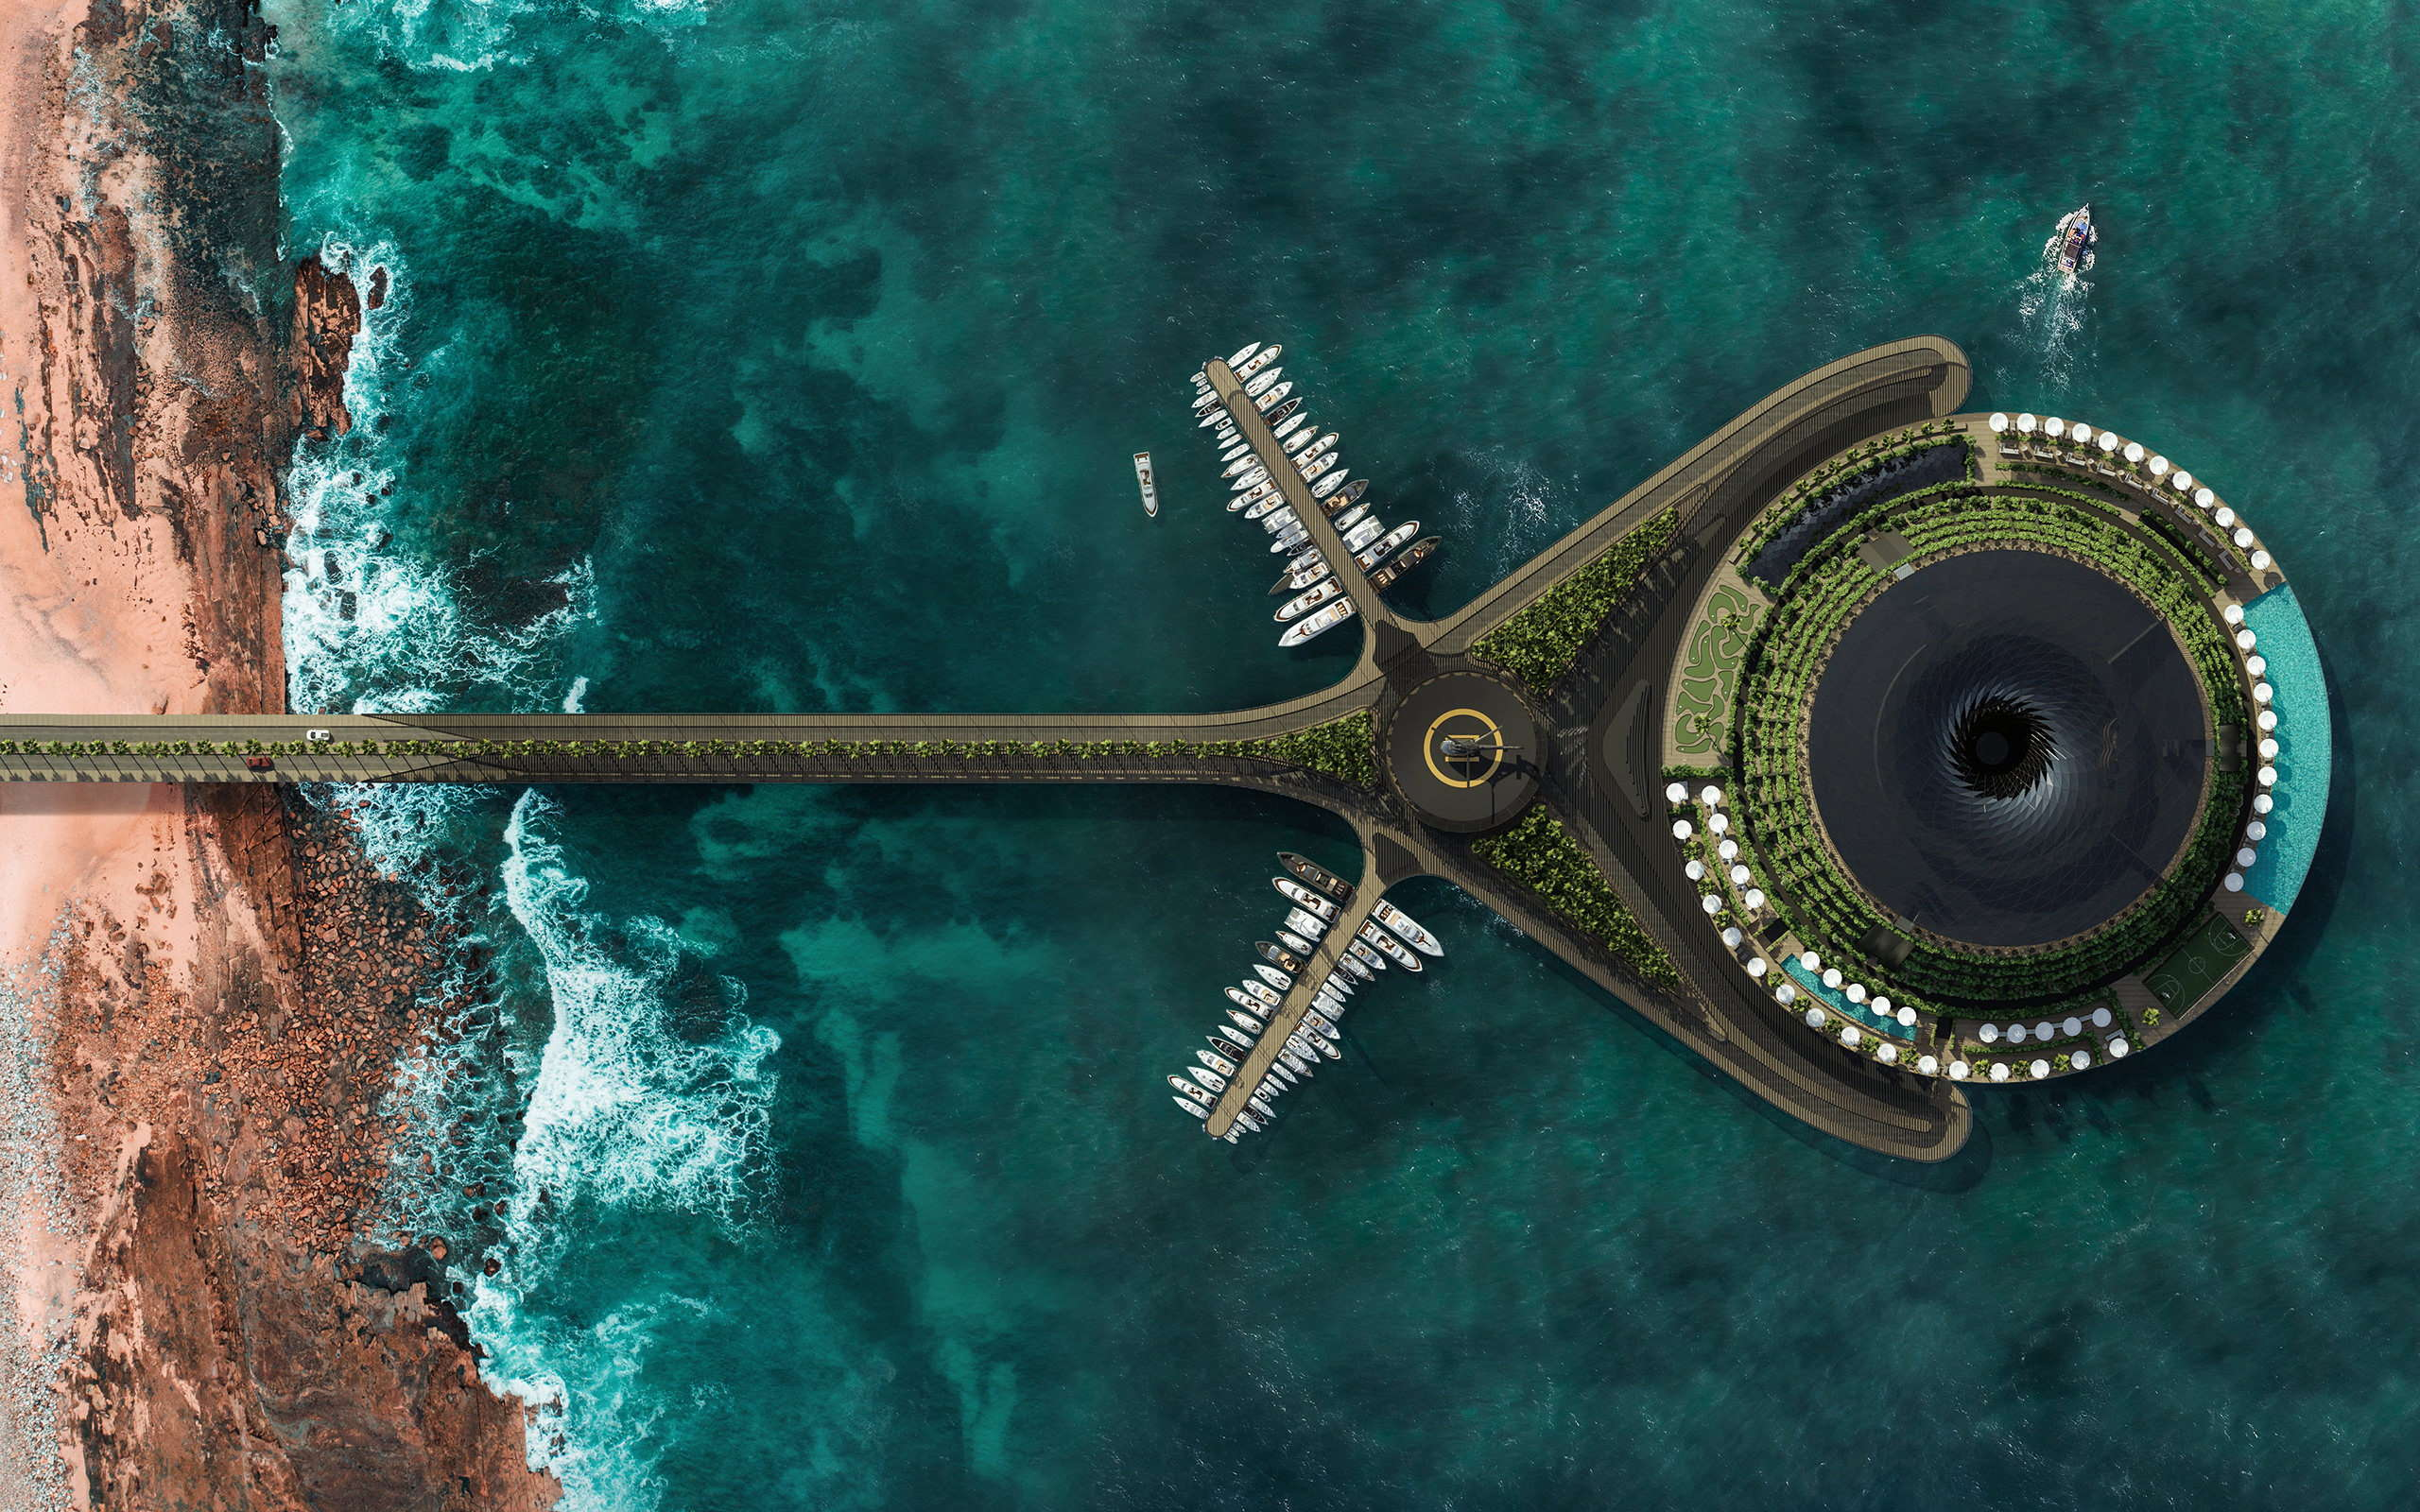 Qatar's Floating Eco-Hotel Concept Is Designed To Generate Its Own Electricity